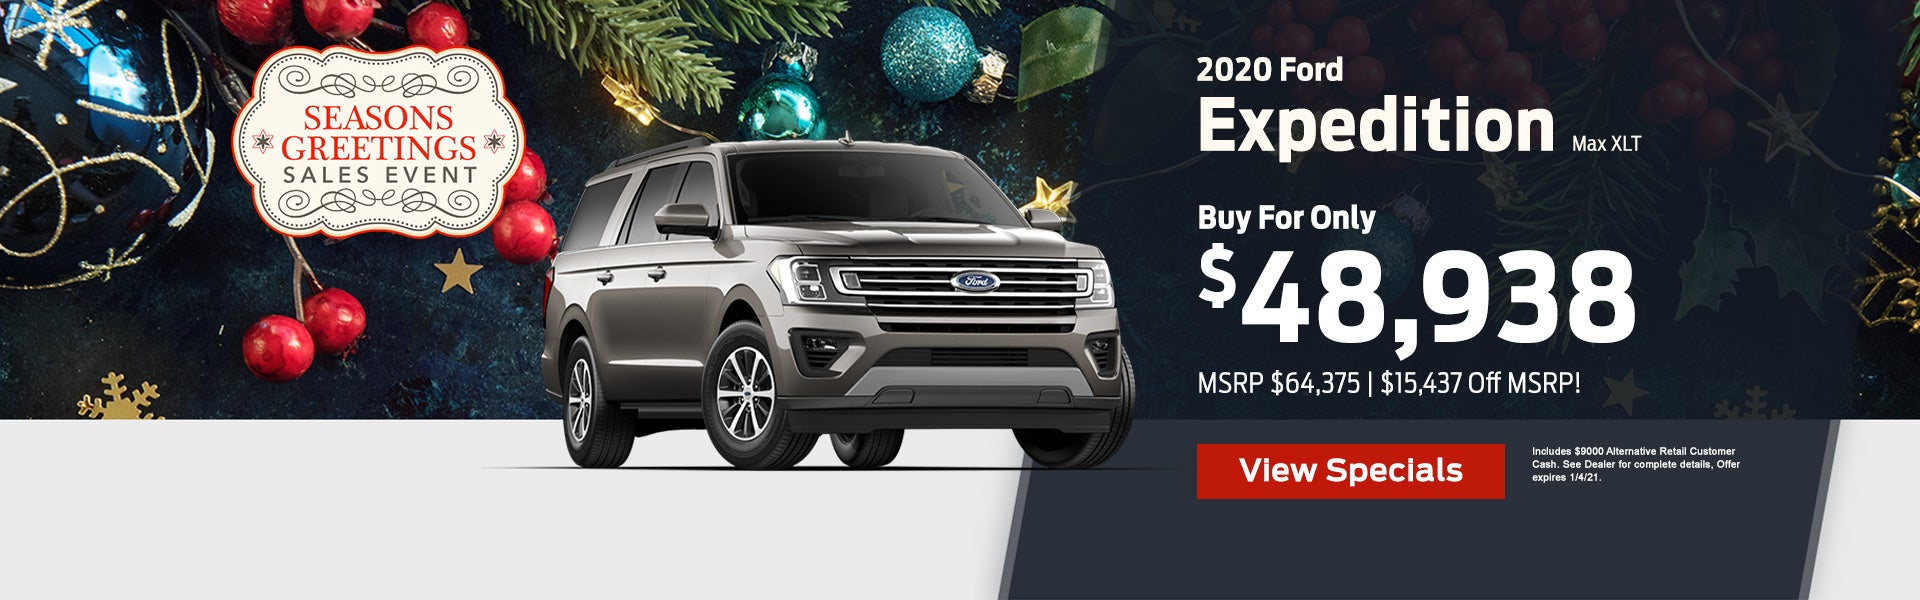 Cook Ford Ford Sales Service In Texas City Texas